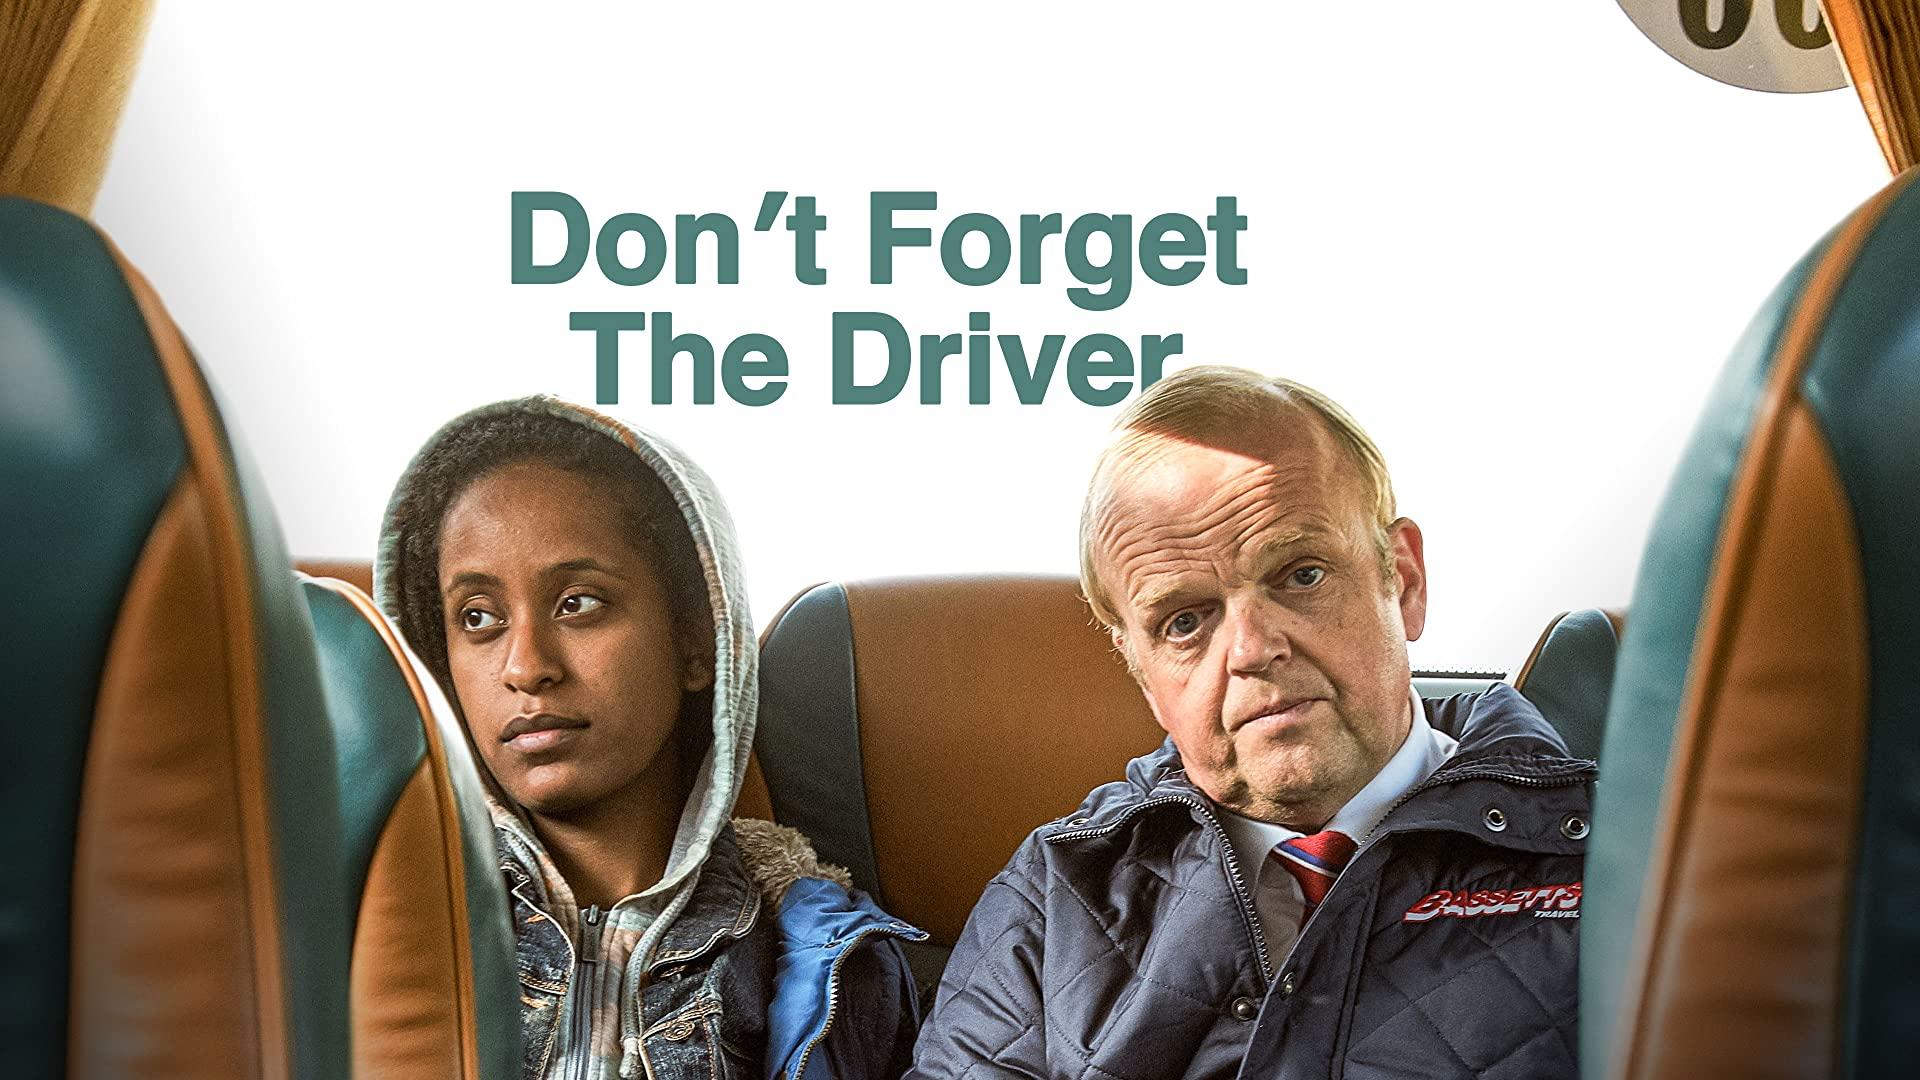 Don't Forget the Driver